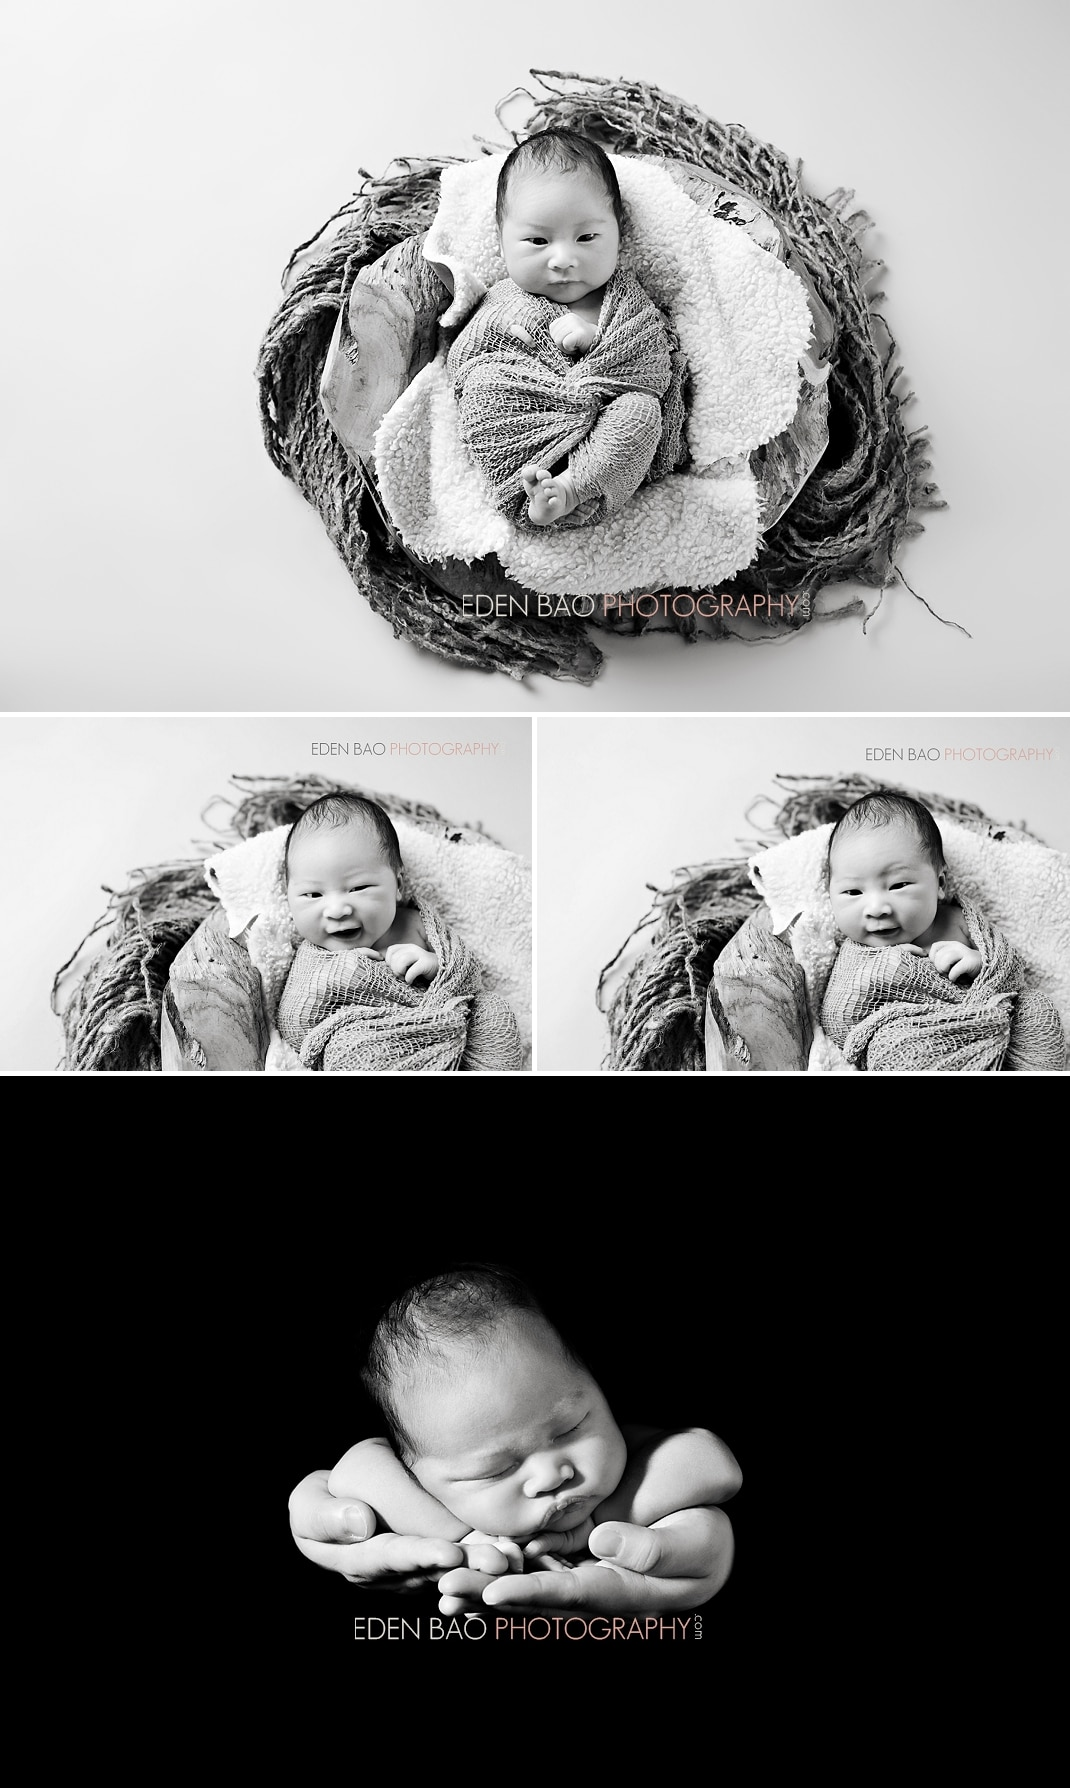 Vancouver BC Newborn Photographer Eden Bao | Newborn boy black and white abstract in hand